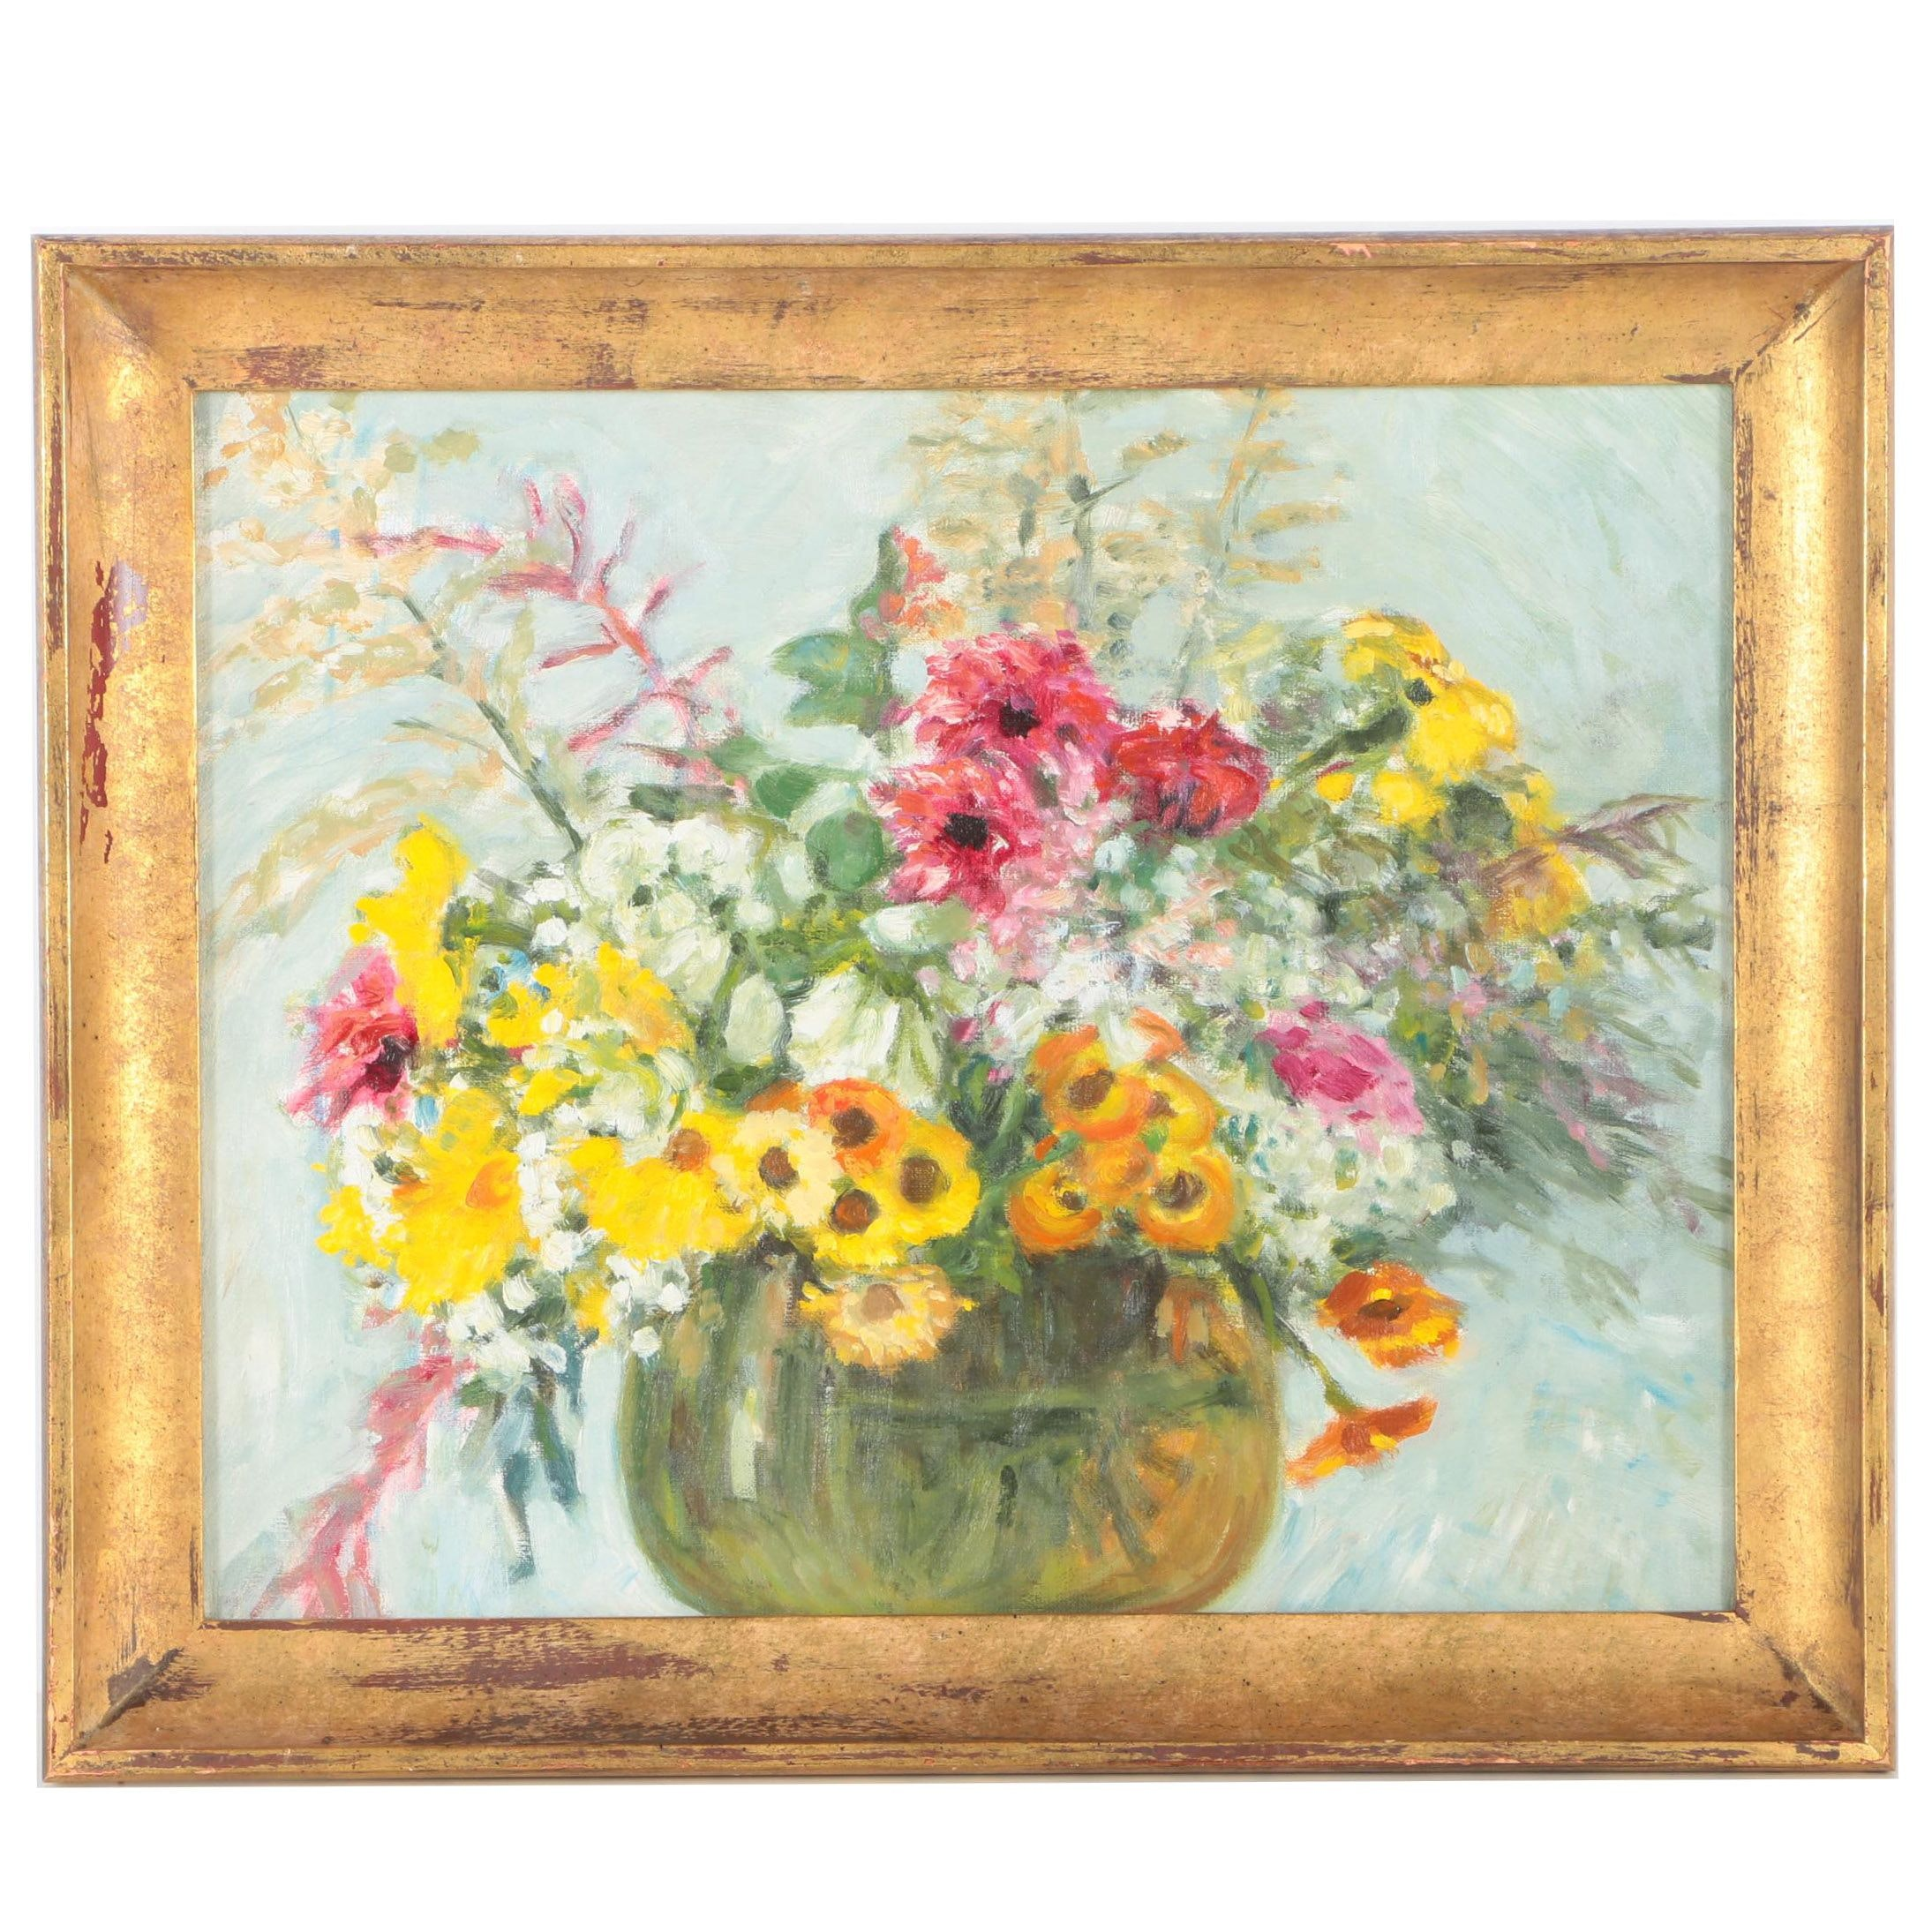 Oil Painting on Canvas of Floral Still Life